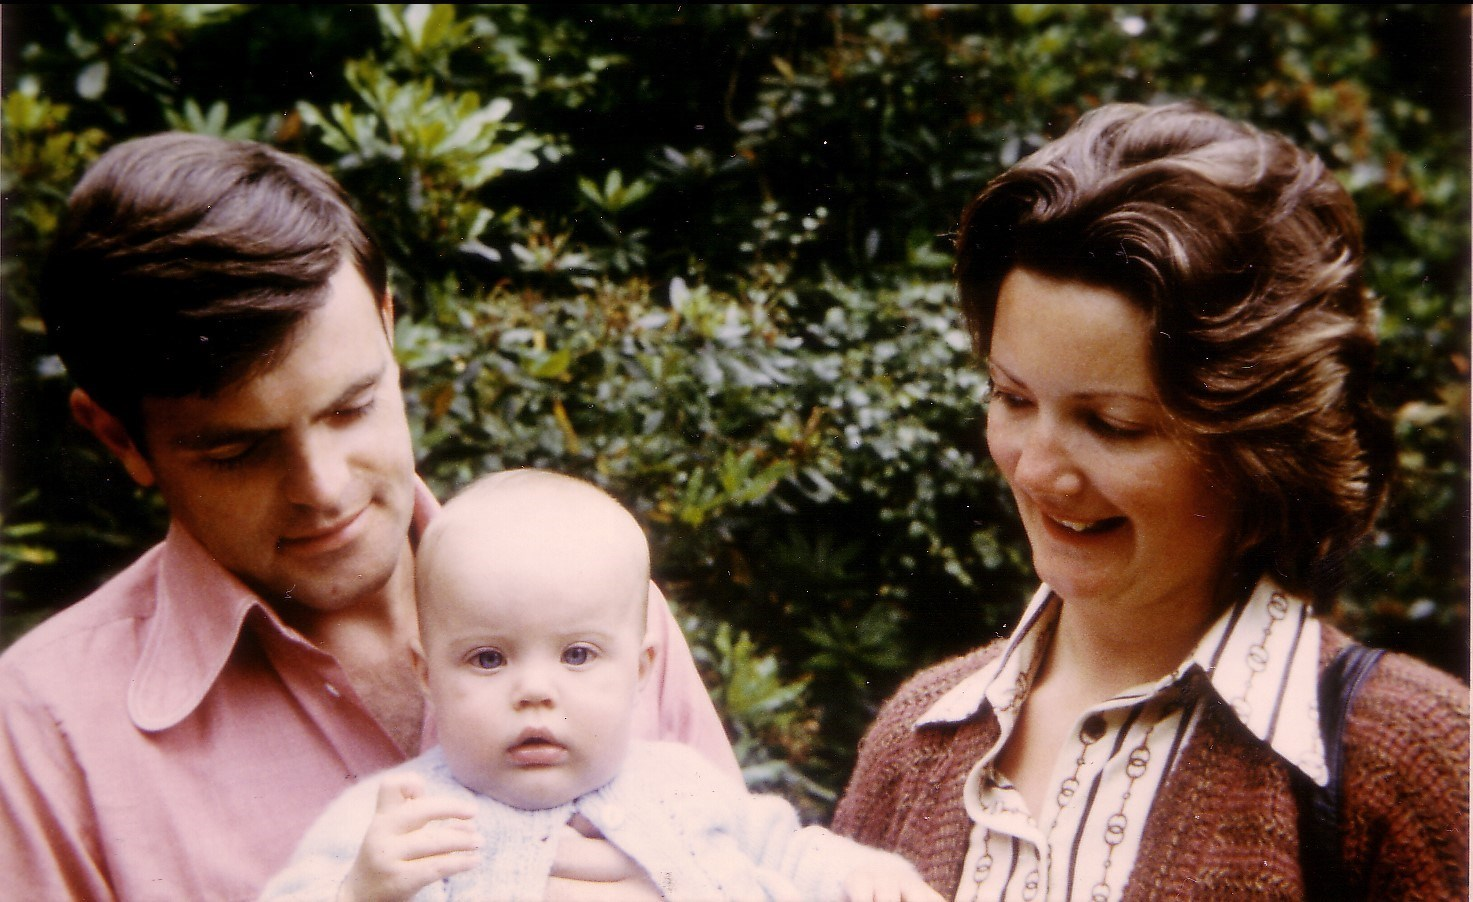 Julian, Margaret & baby Simon - 1978